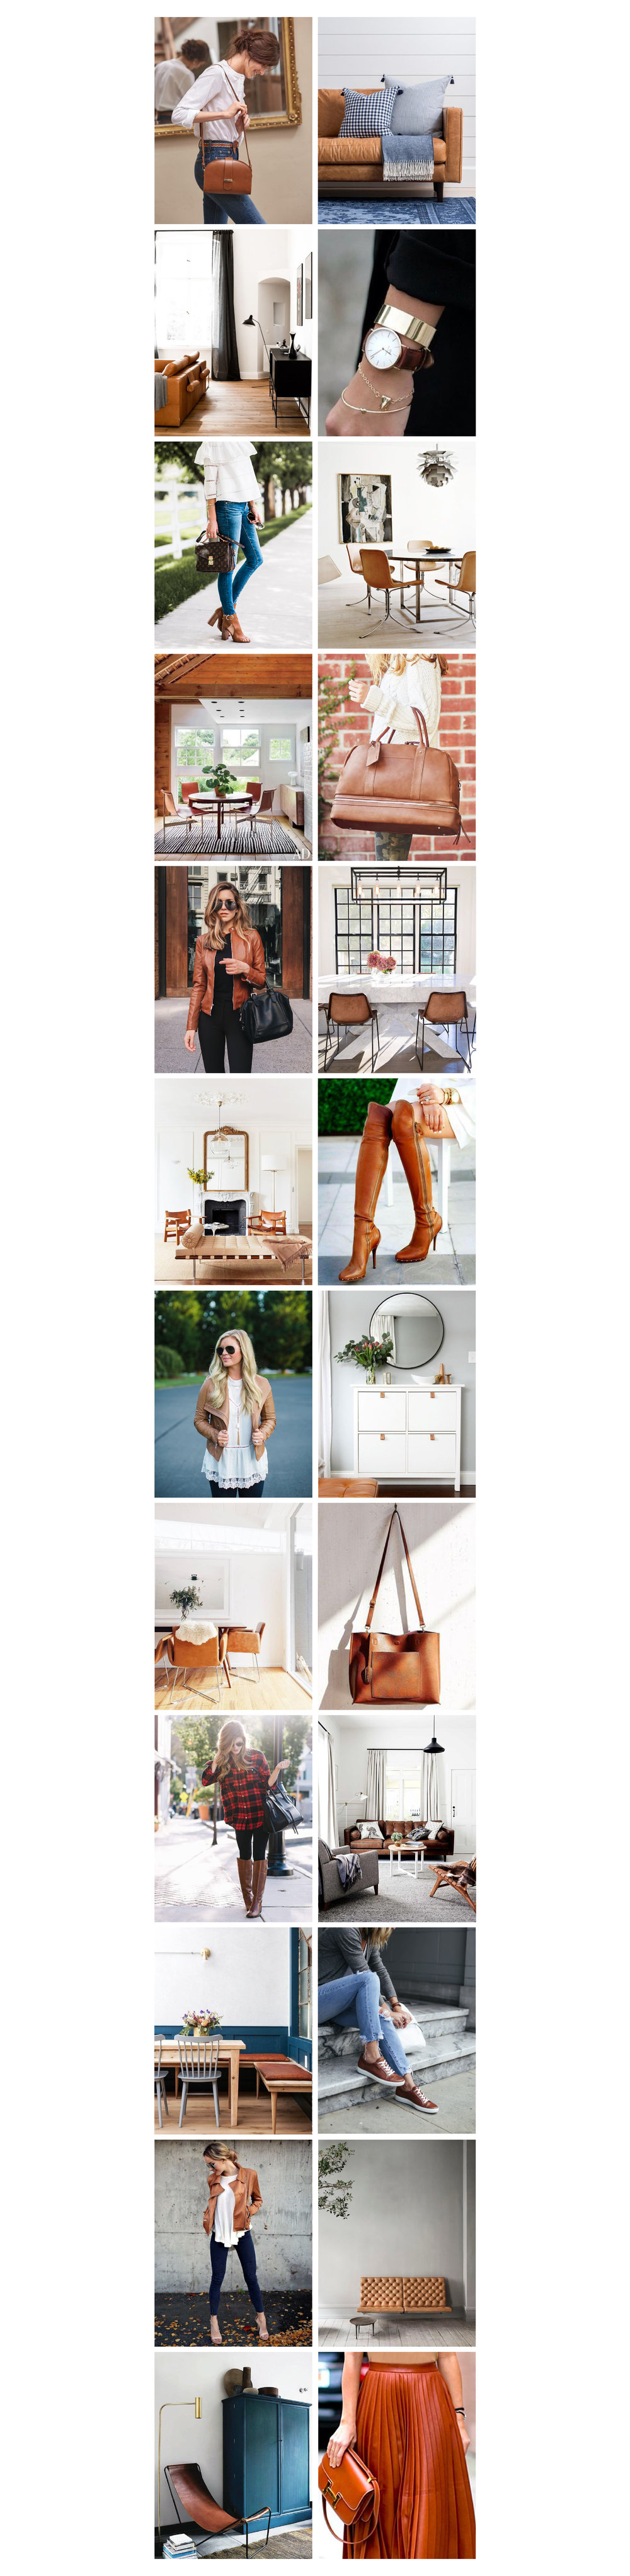 kris and kate studio_fashion vs interior trends_brown leather